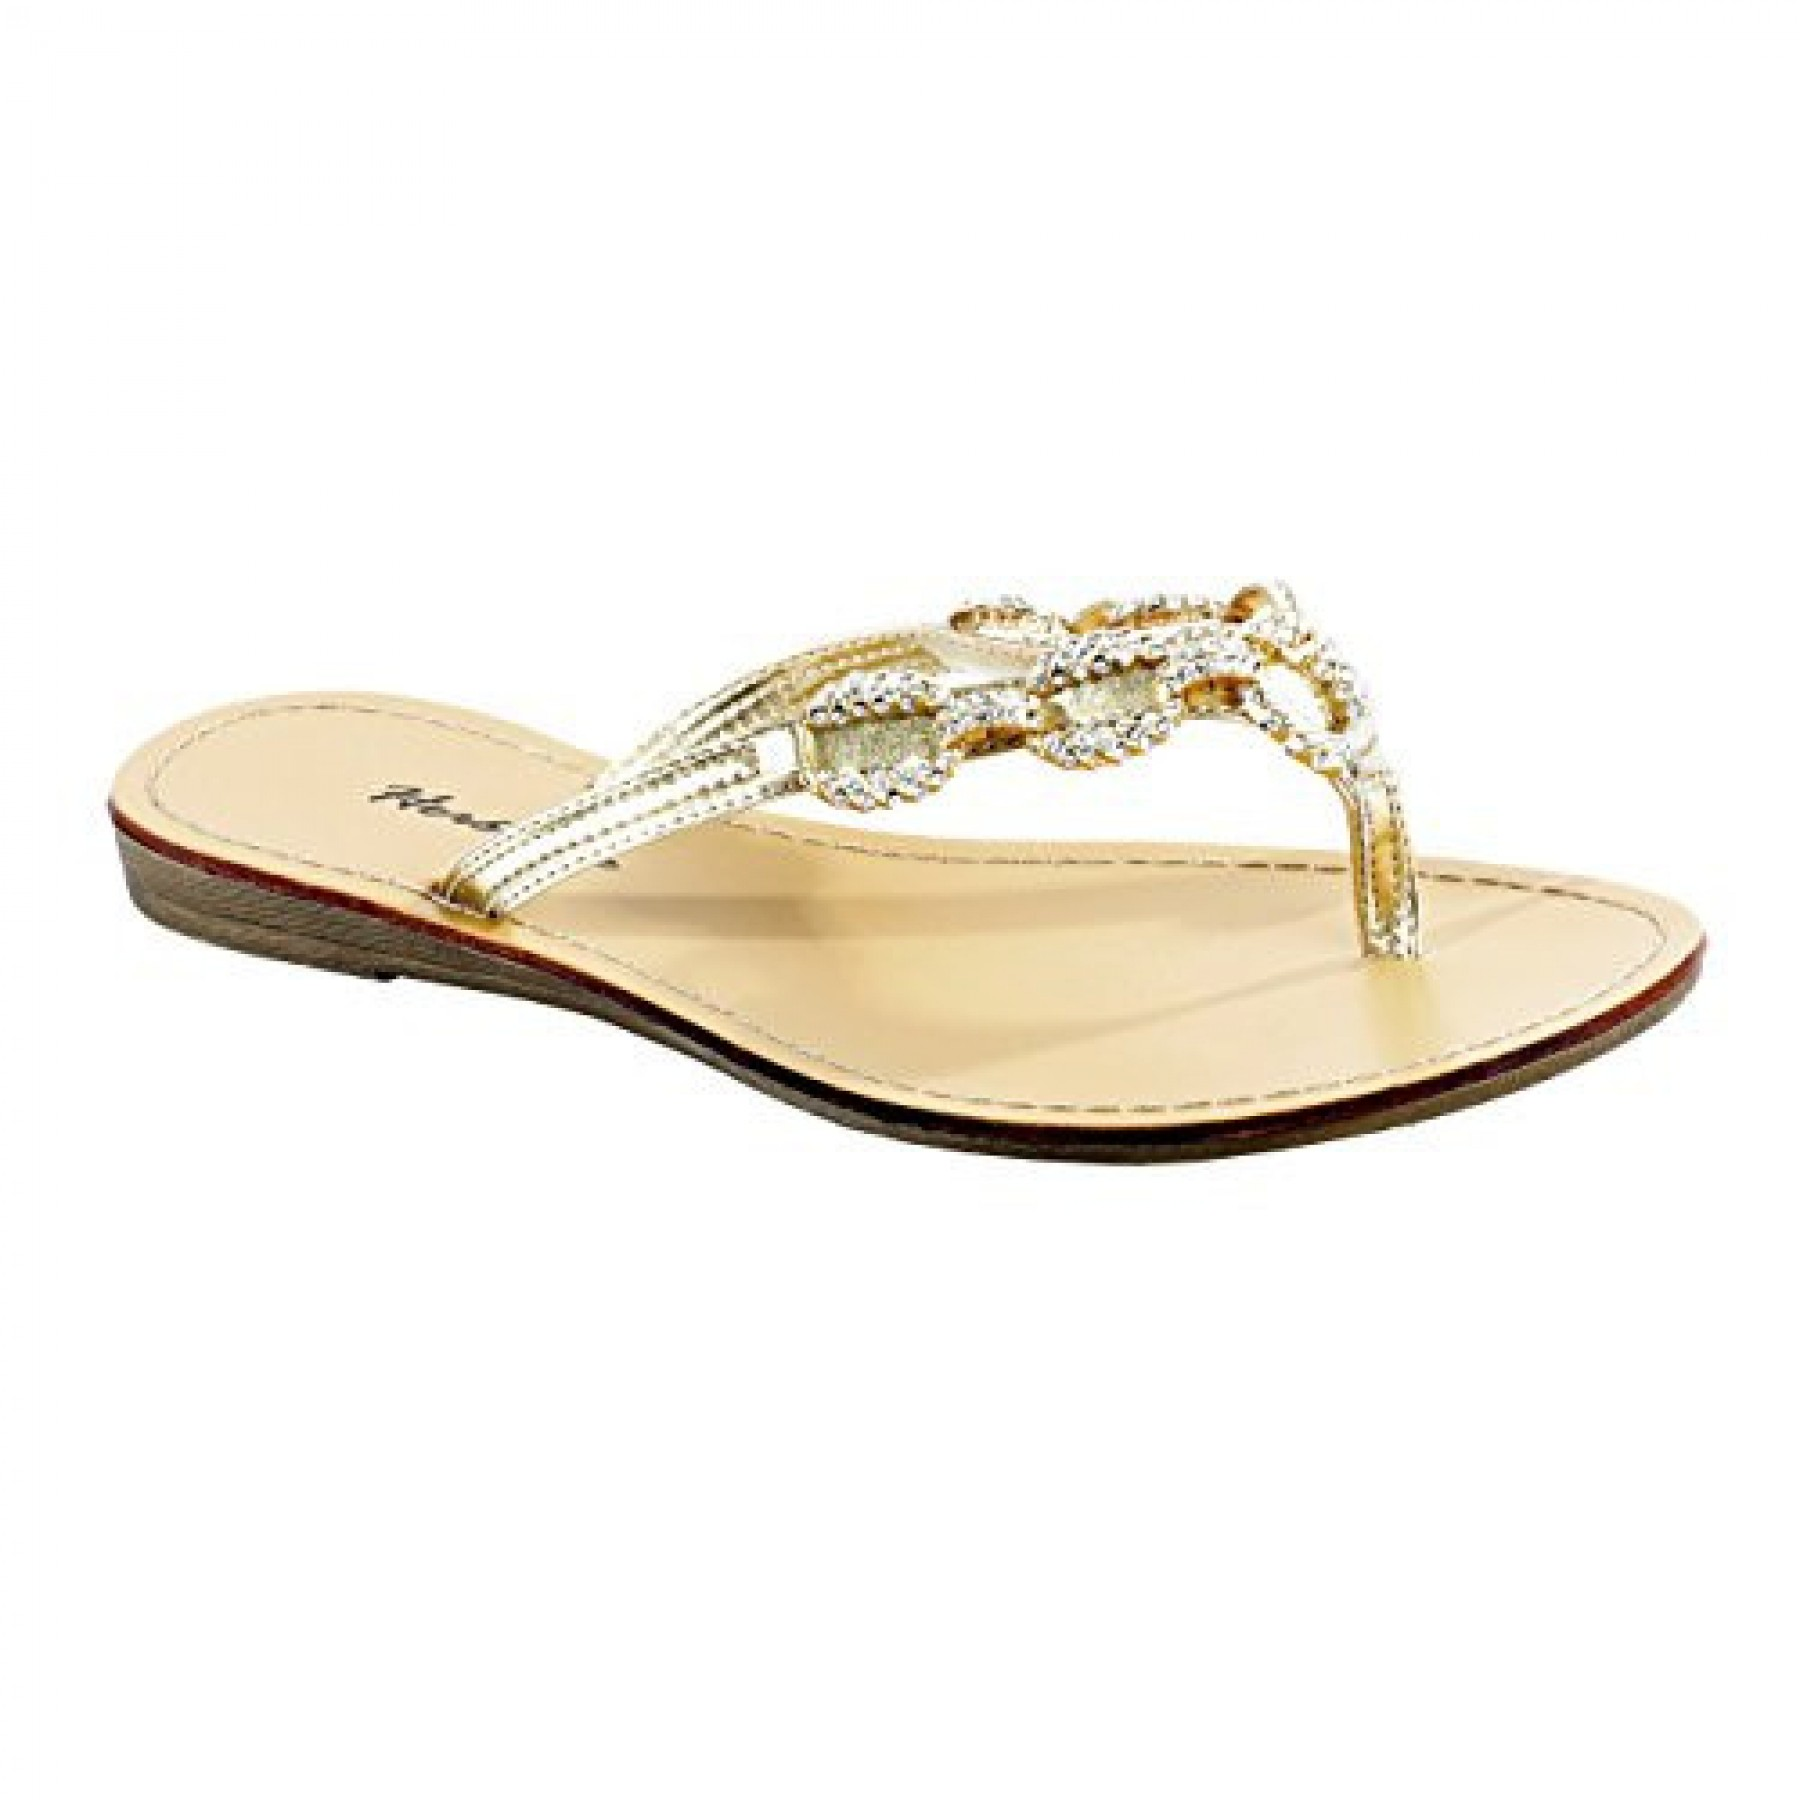 1d8926e1790f Women s Gold Janiesa Manmade Flat Thong Sandal with Glowing ...